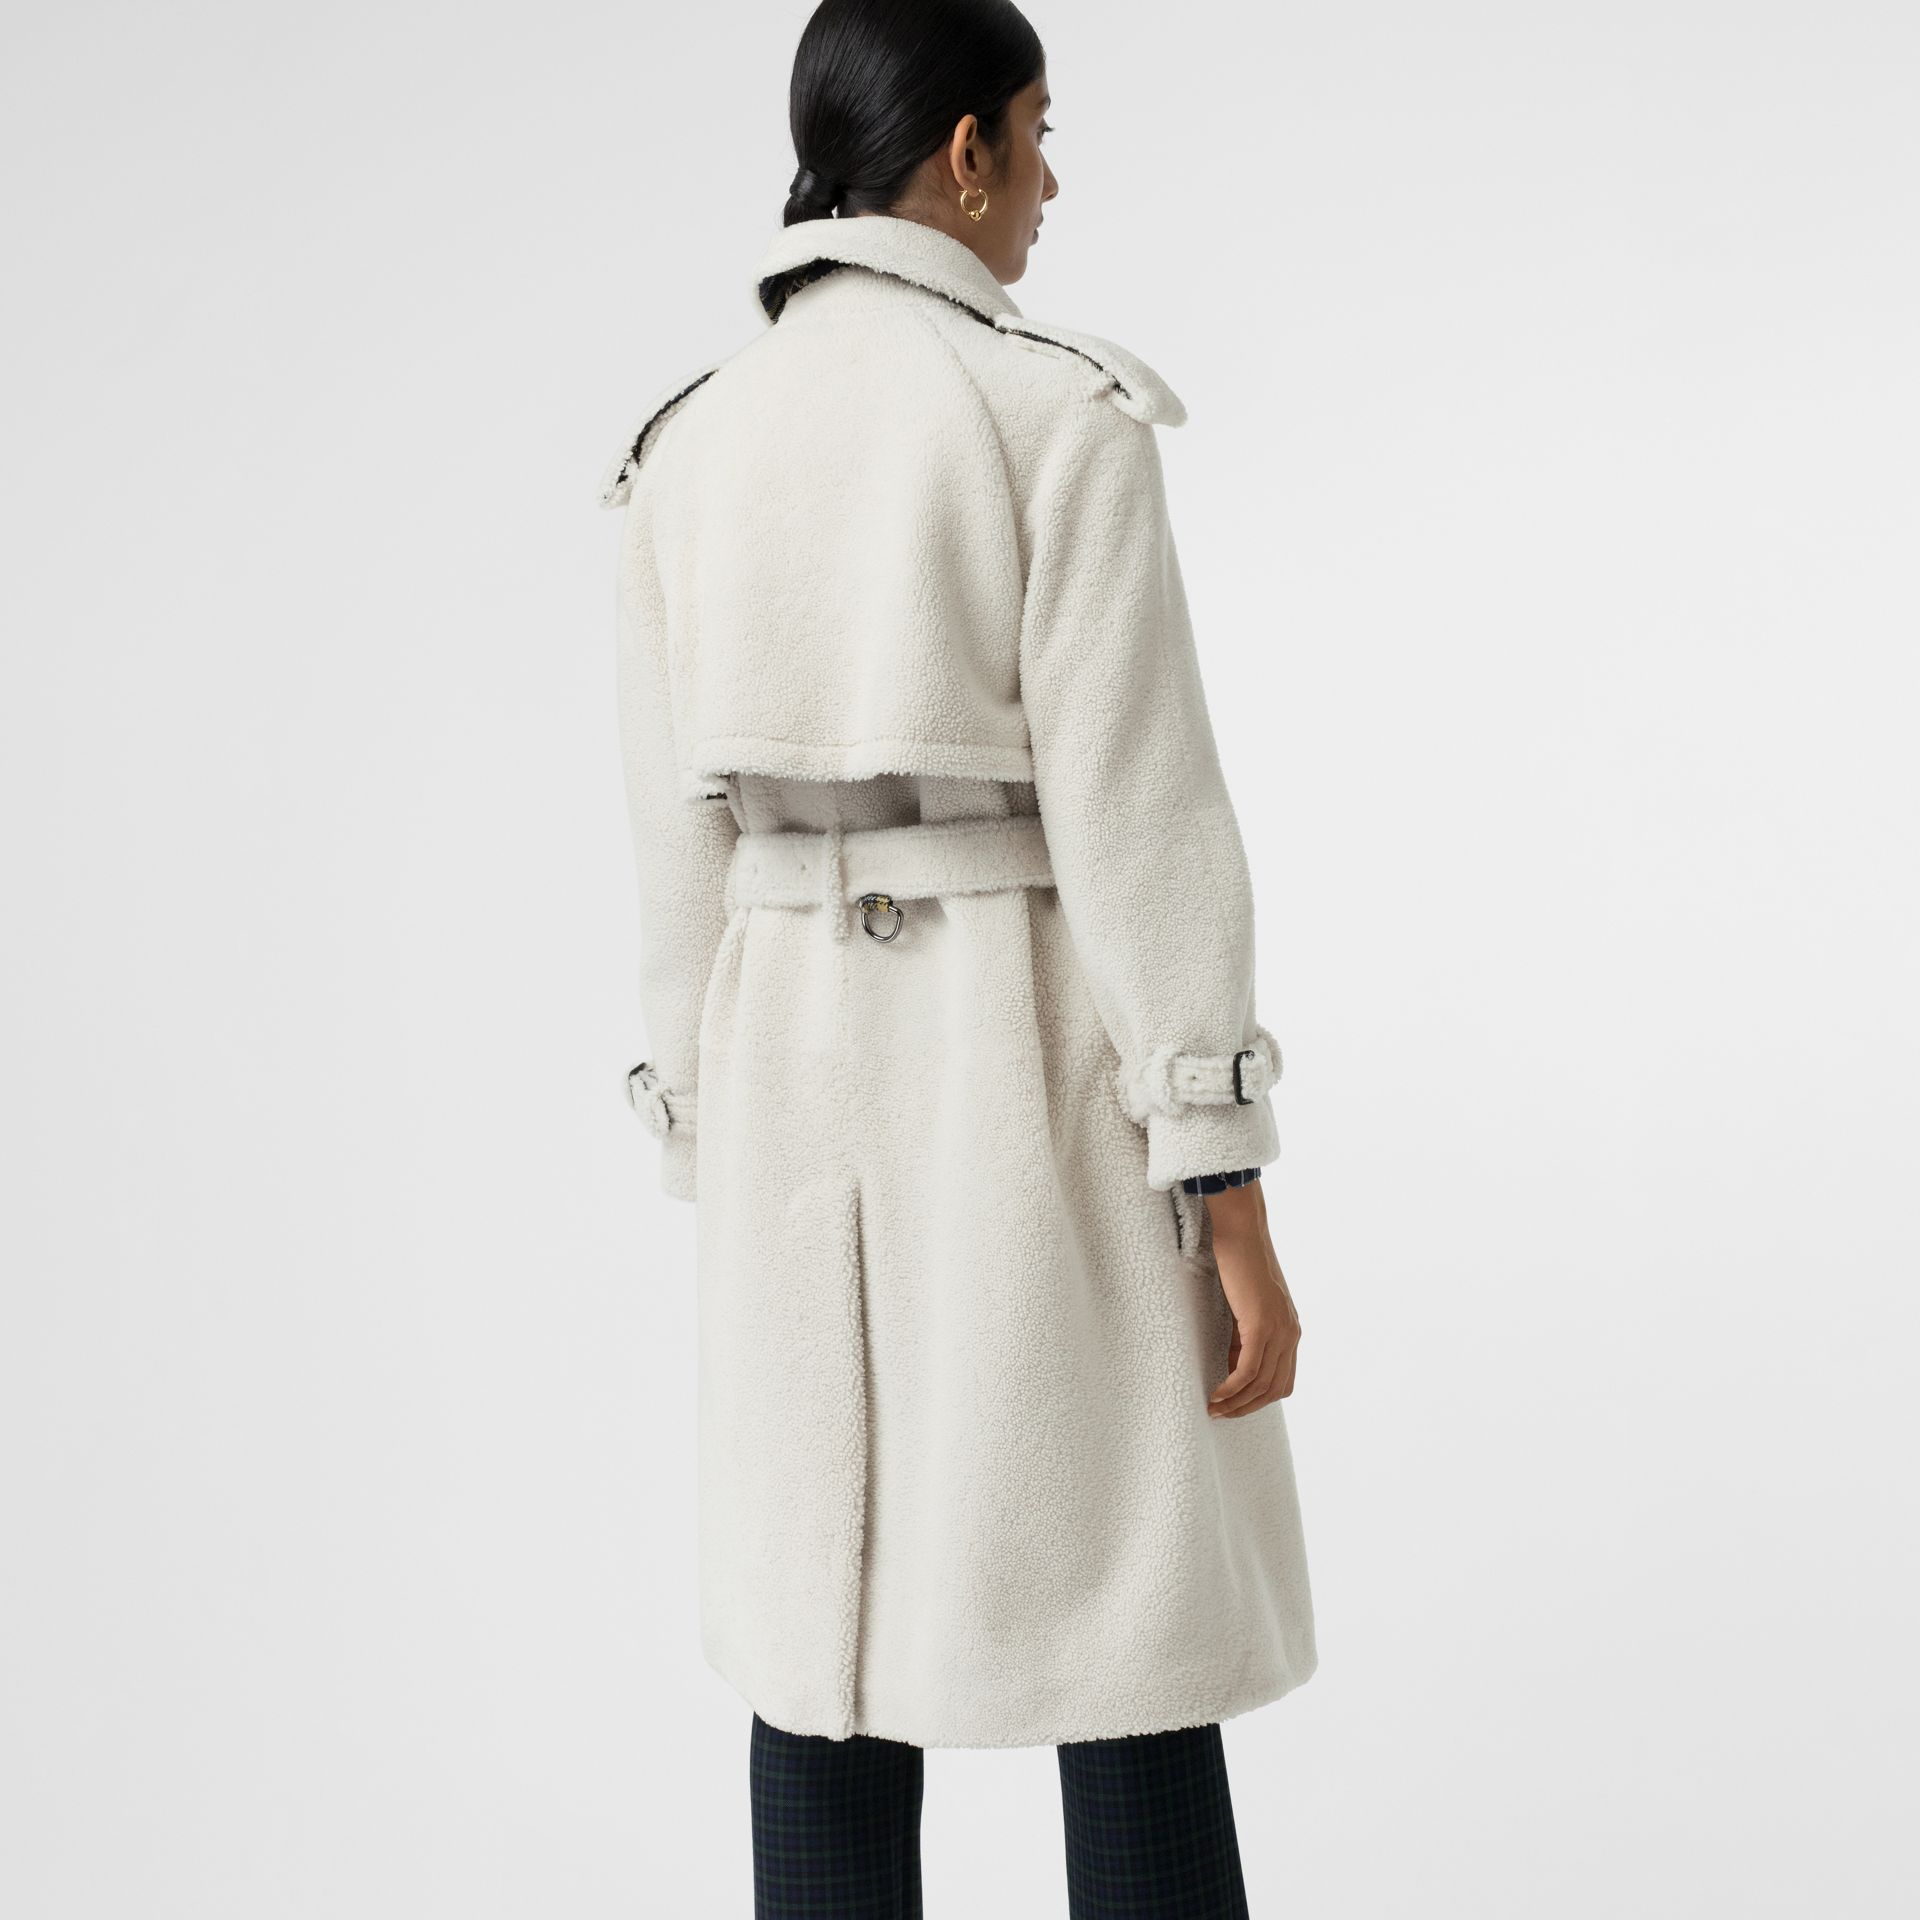 Tartan-lined Shearling Trench Coat in Off White - Women | Burberry United Kingdom - gallery image 2